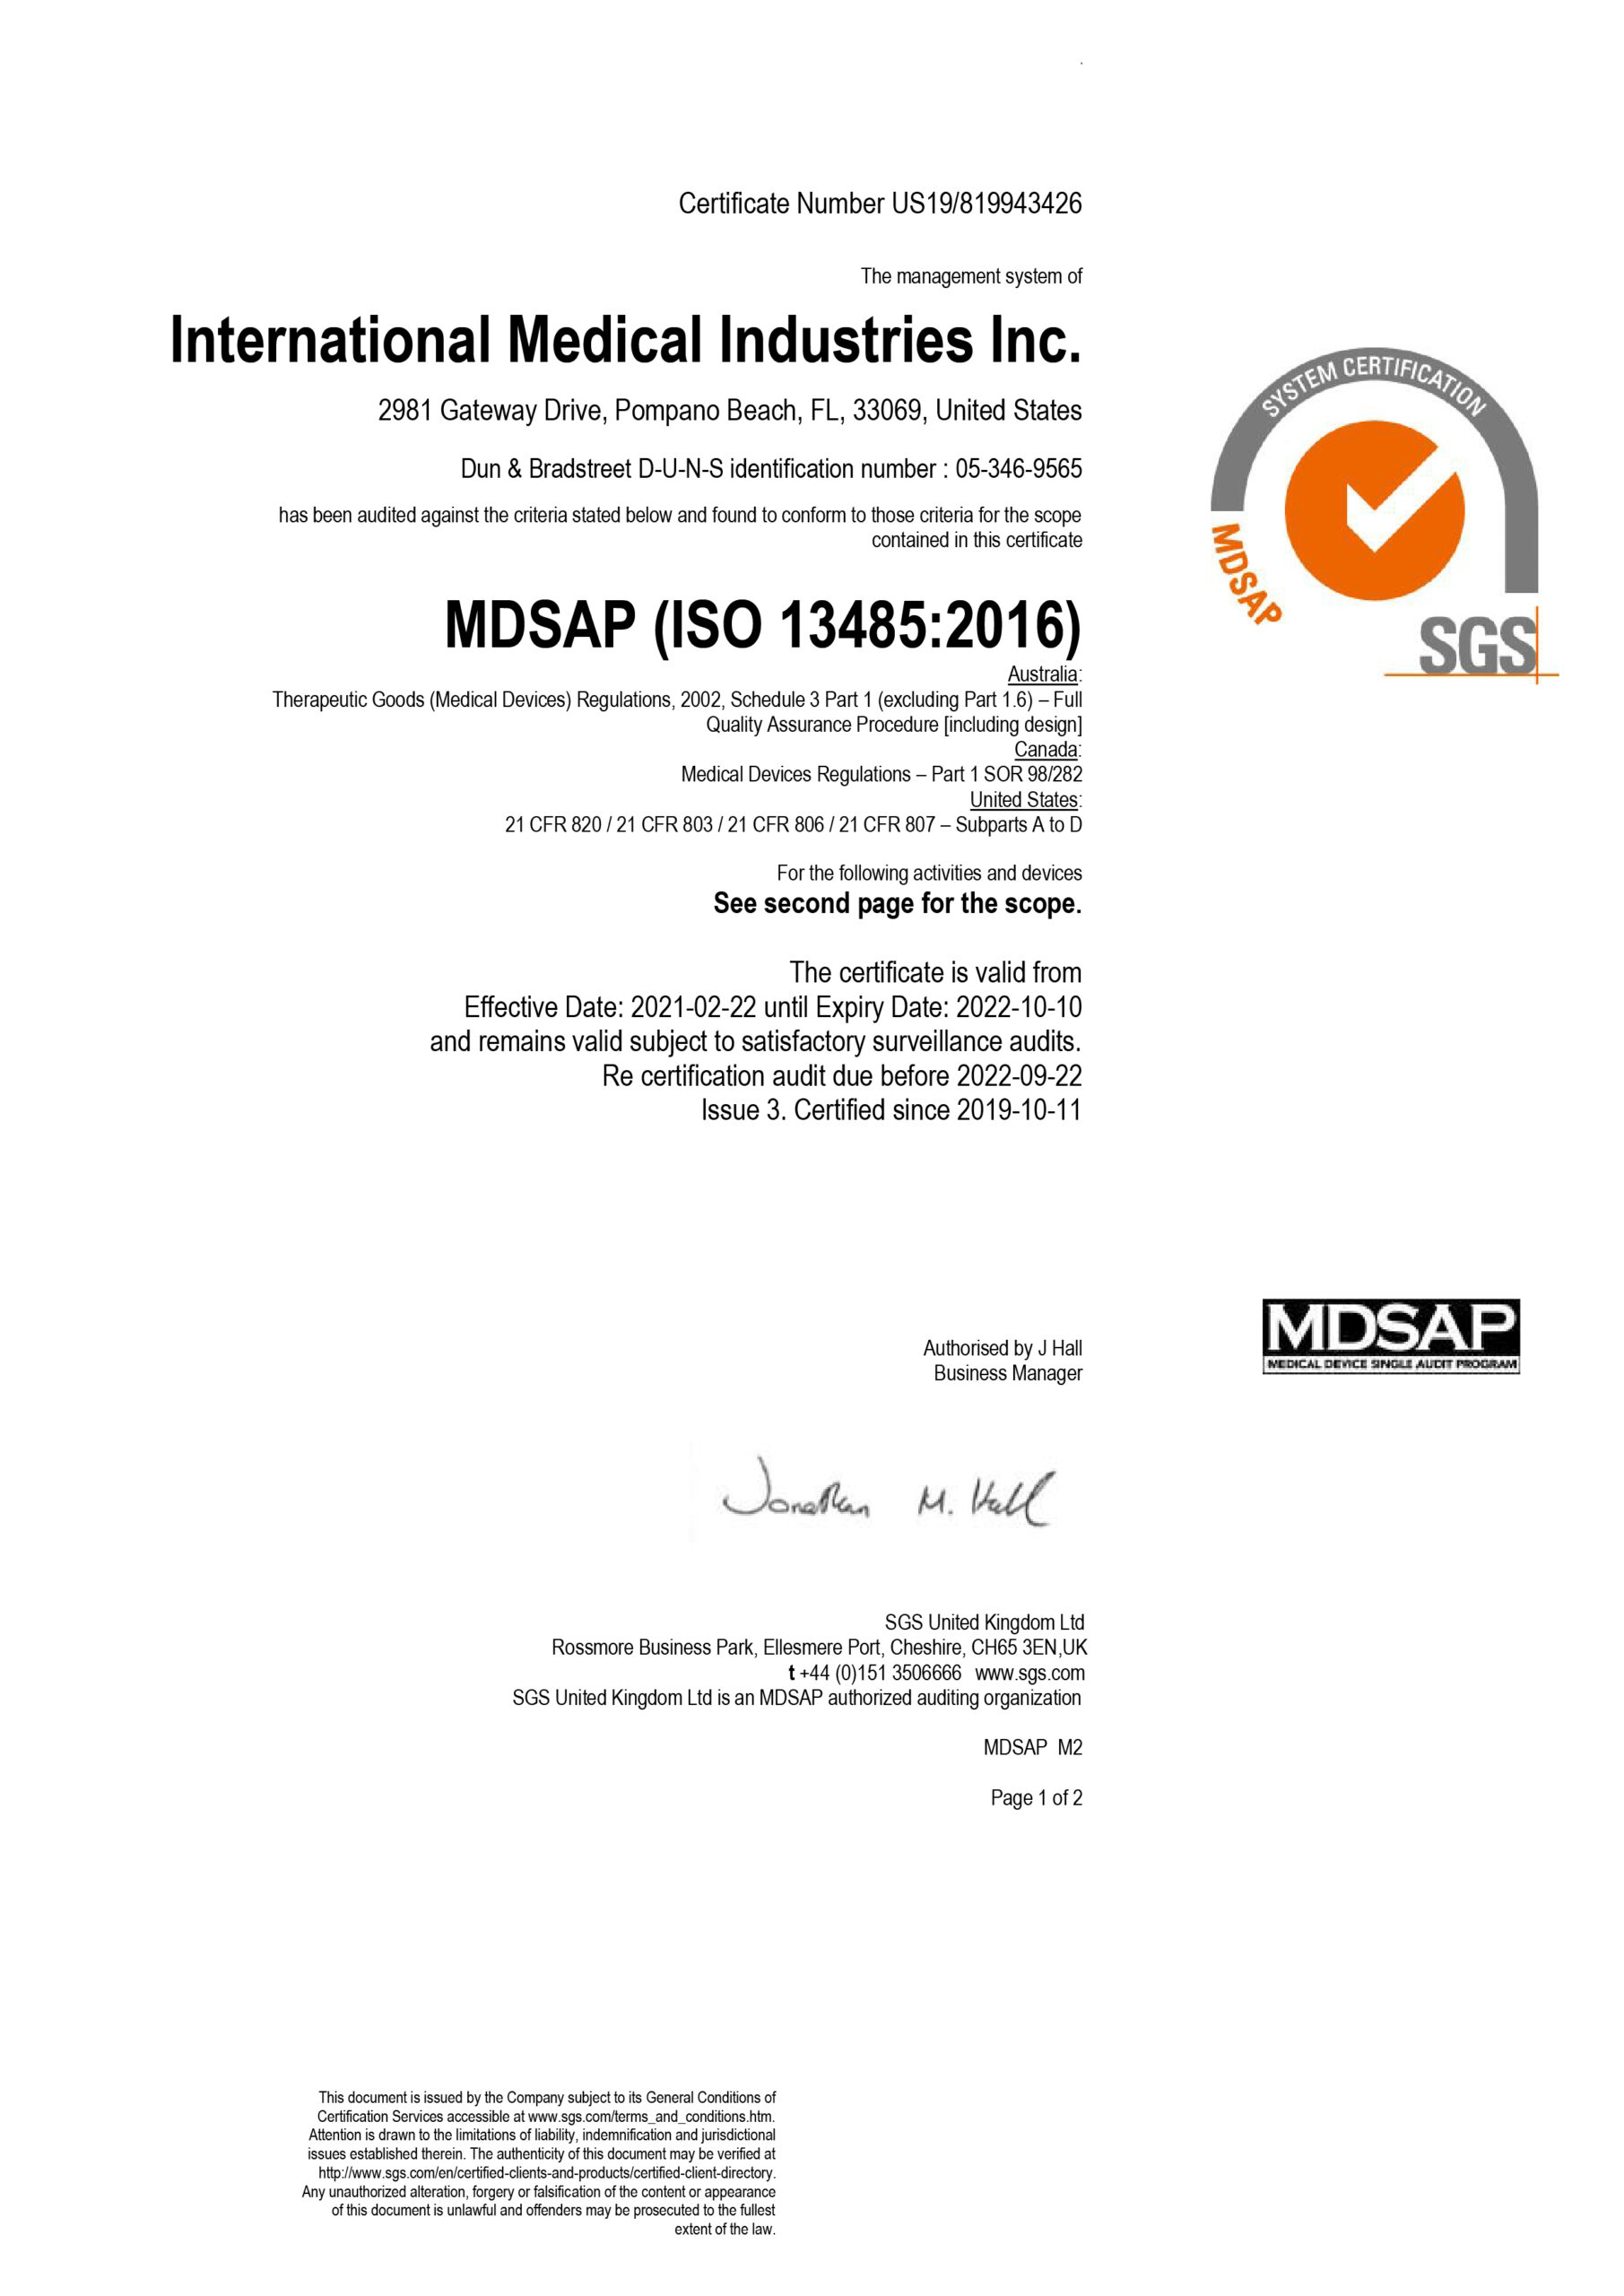 IMI MDSAP Certification